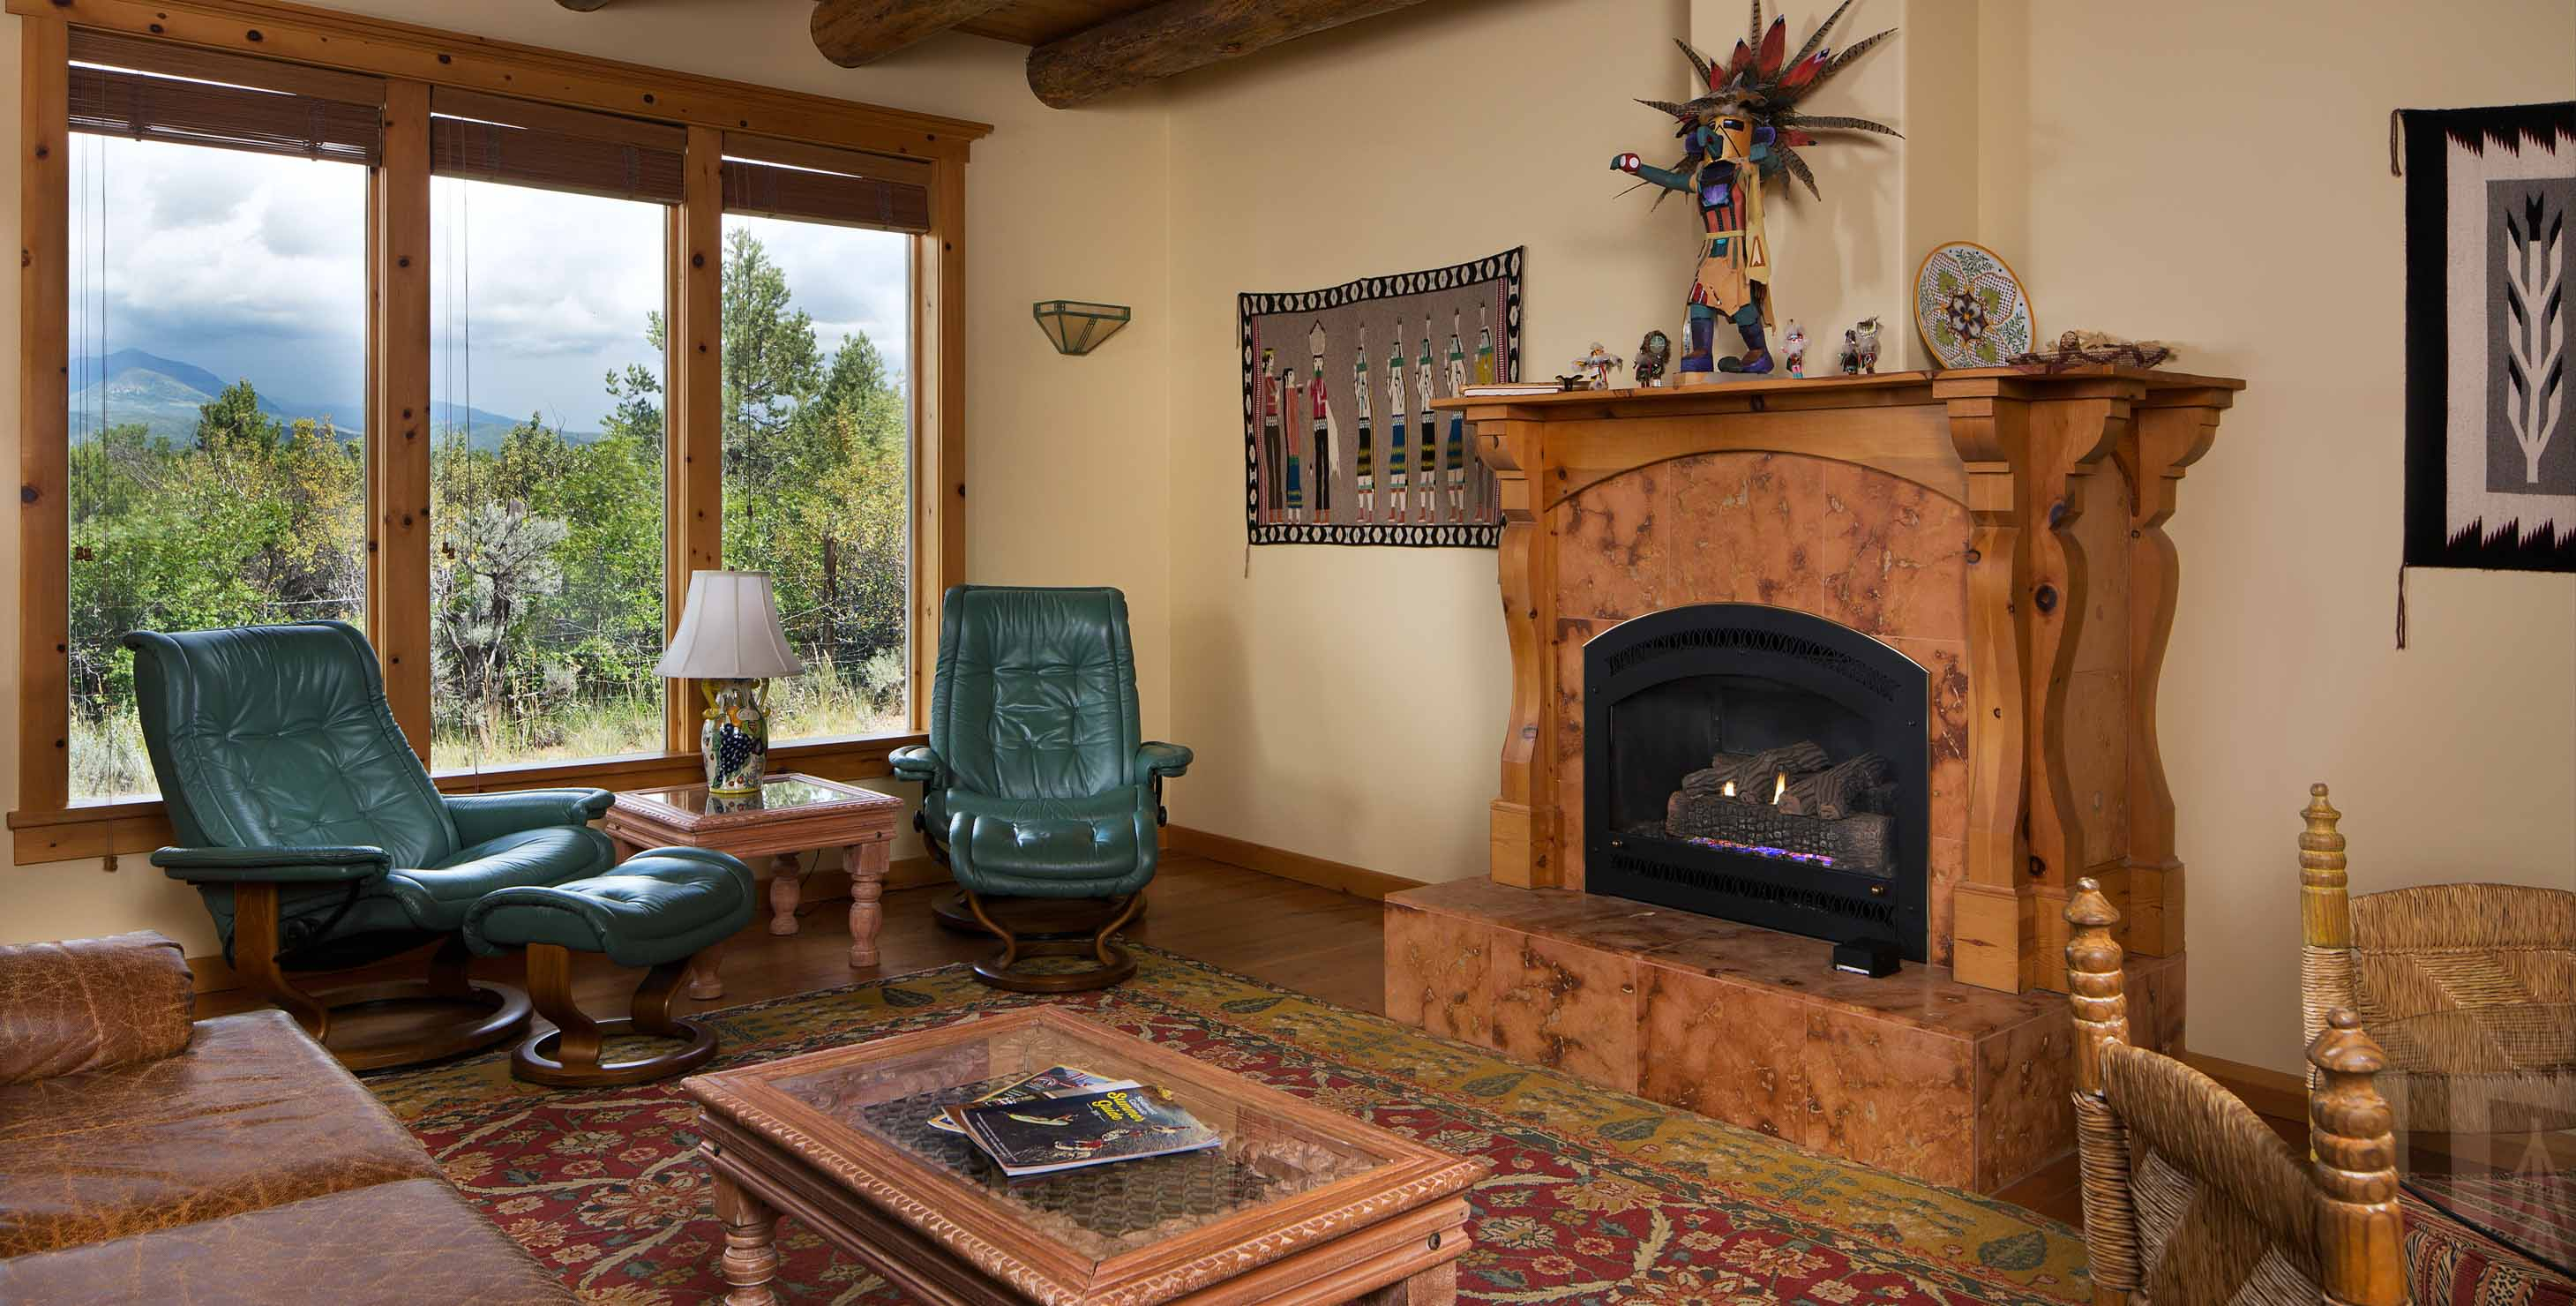 Spacious well lit living room with fireplace and ample seating